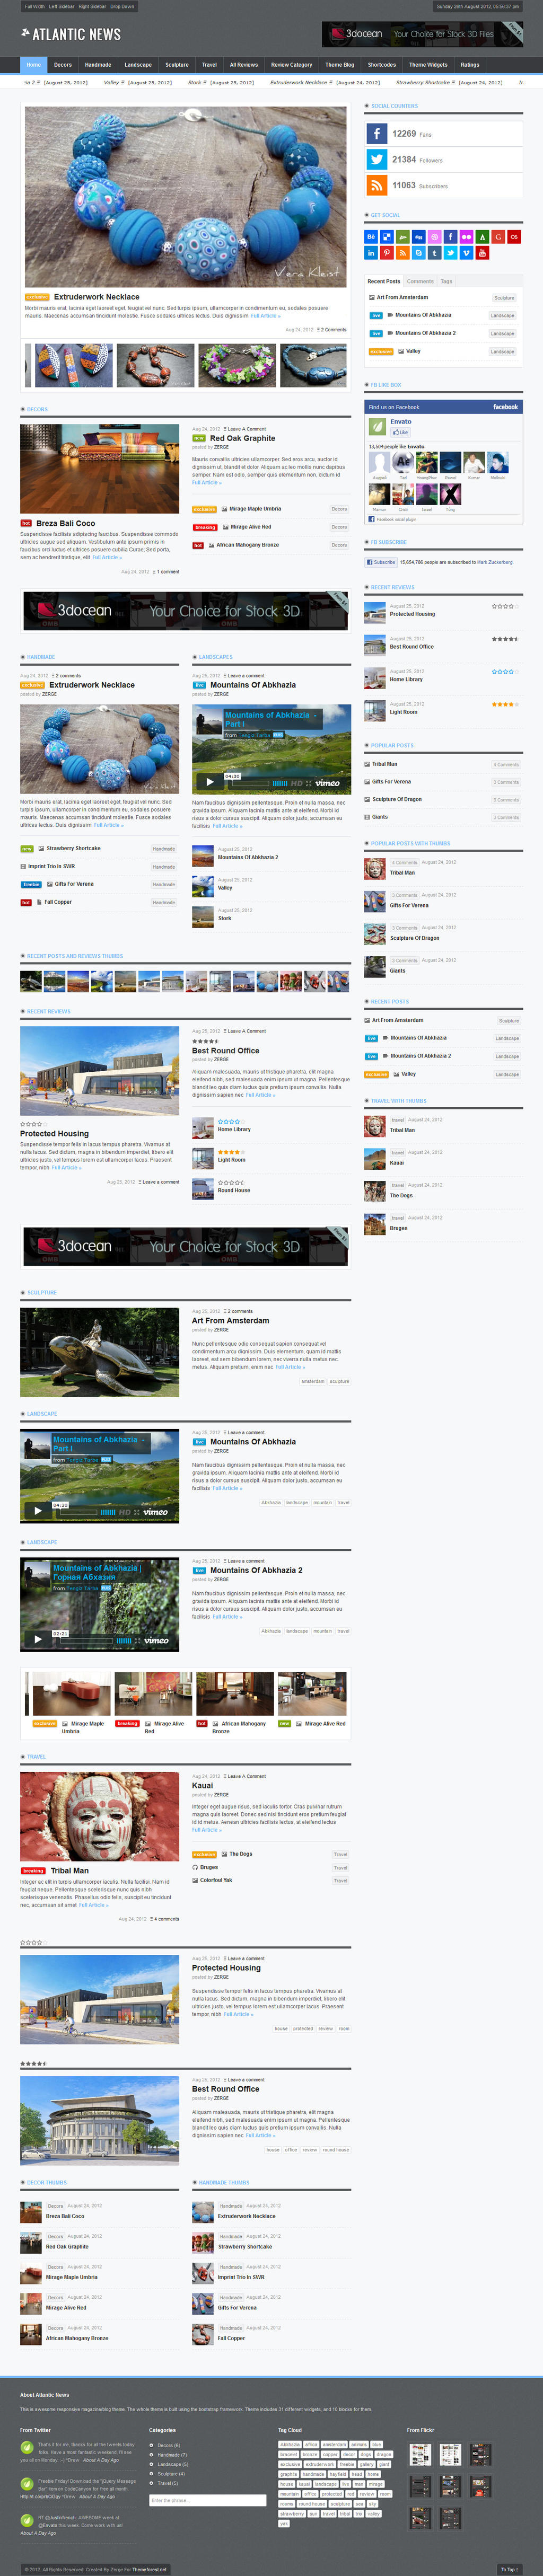 Atlantic News - Responsive WordPress Magazine Blog by ZERGEV